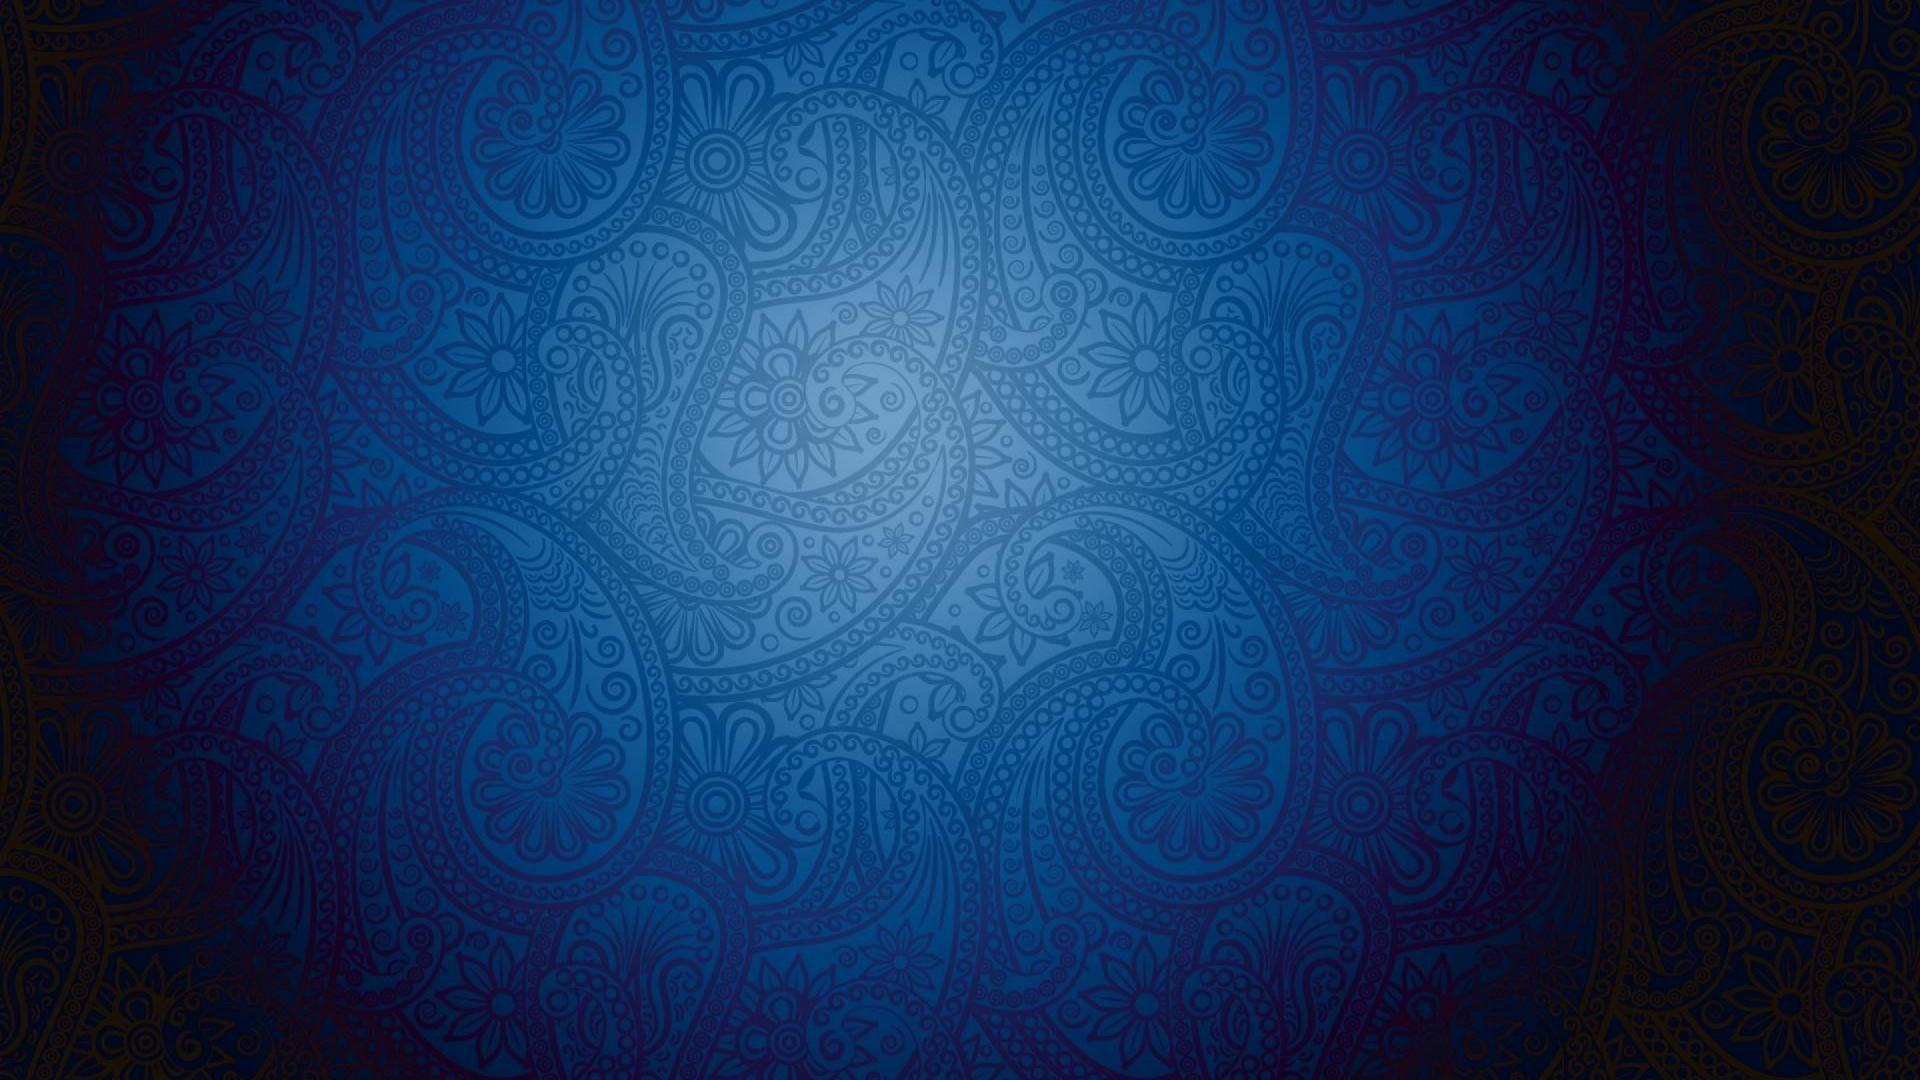 ... Pattern Background with Modern Batik Motive | HD Wallpapers for Free